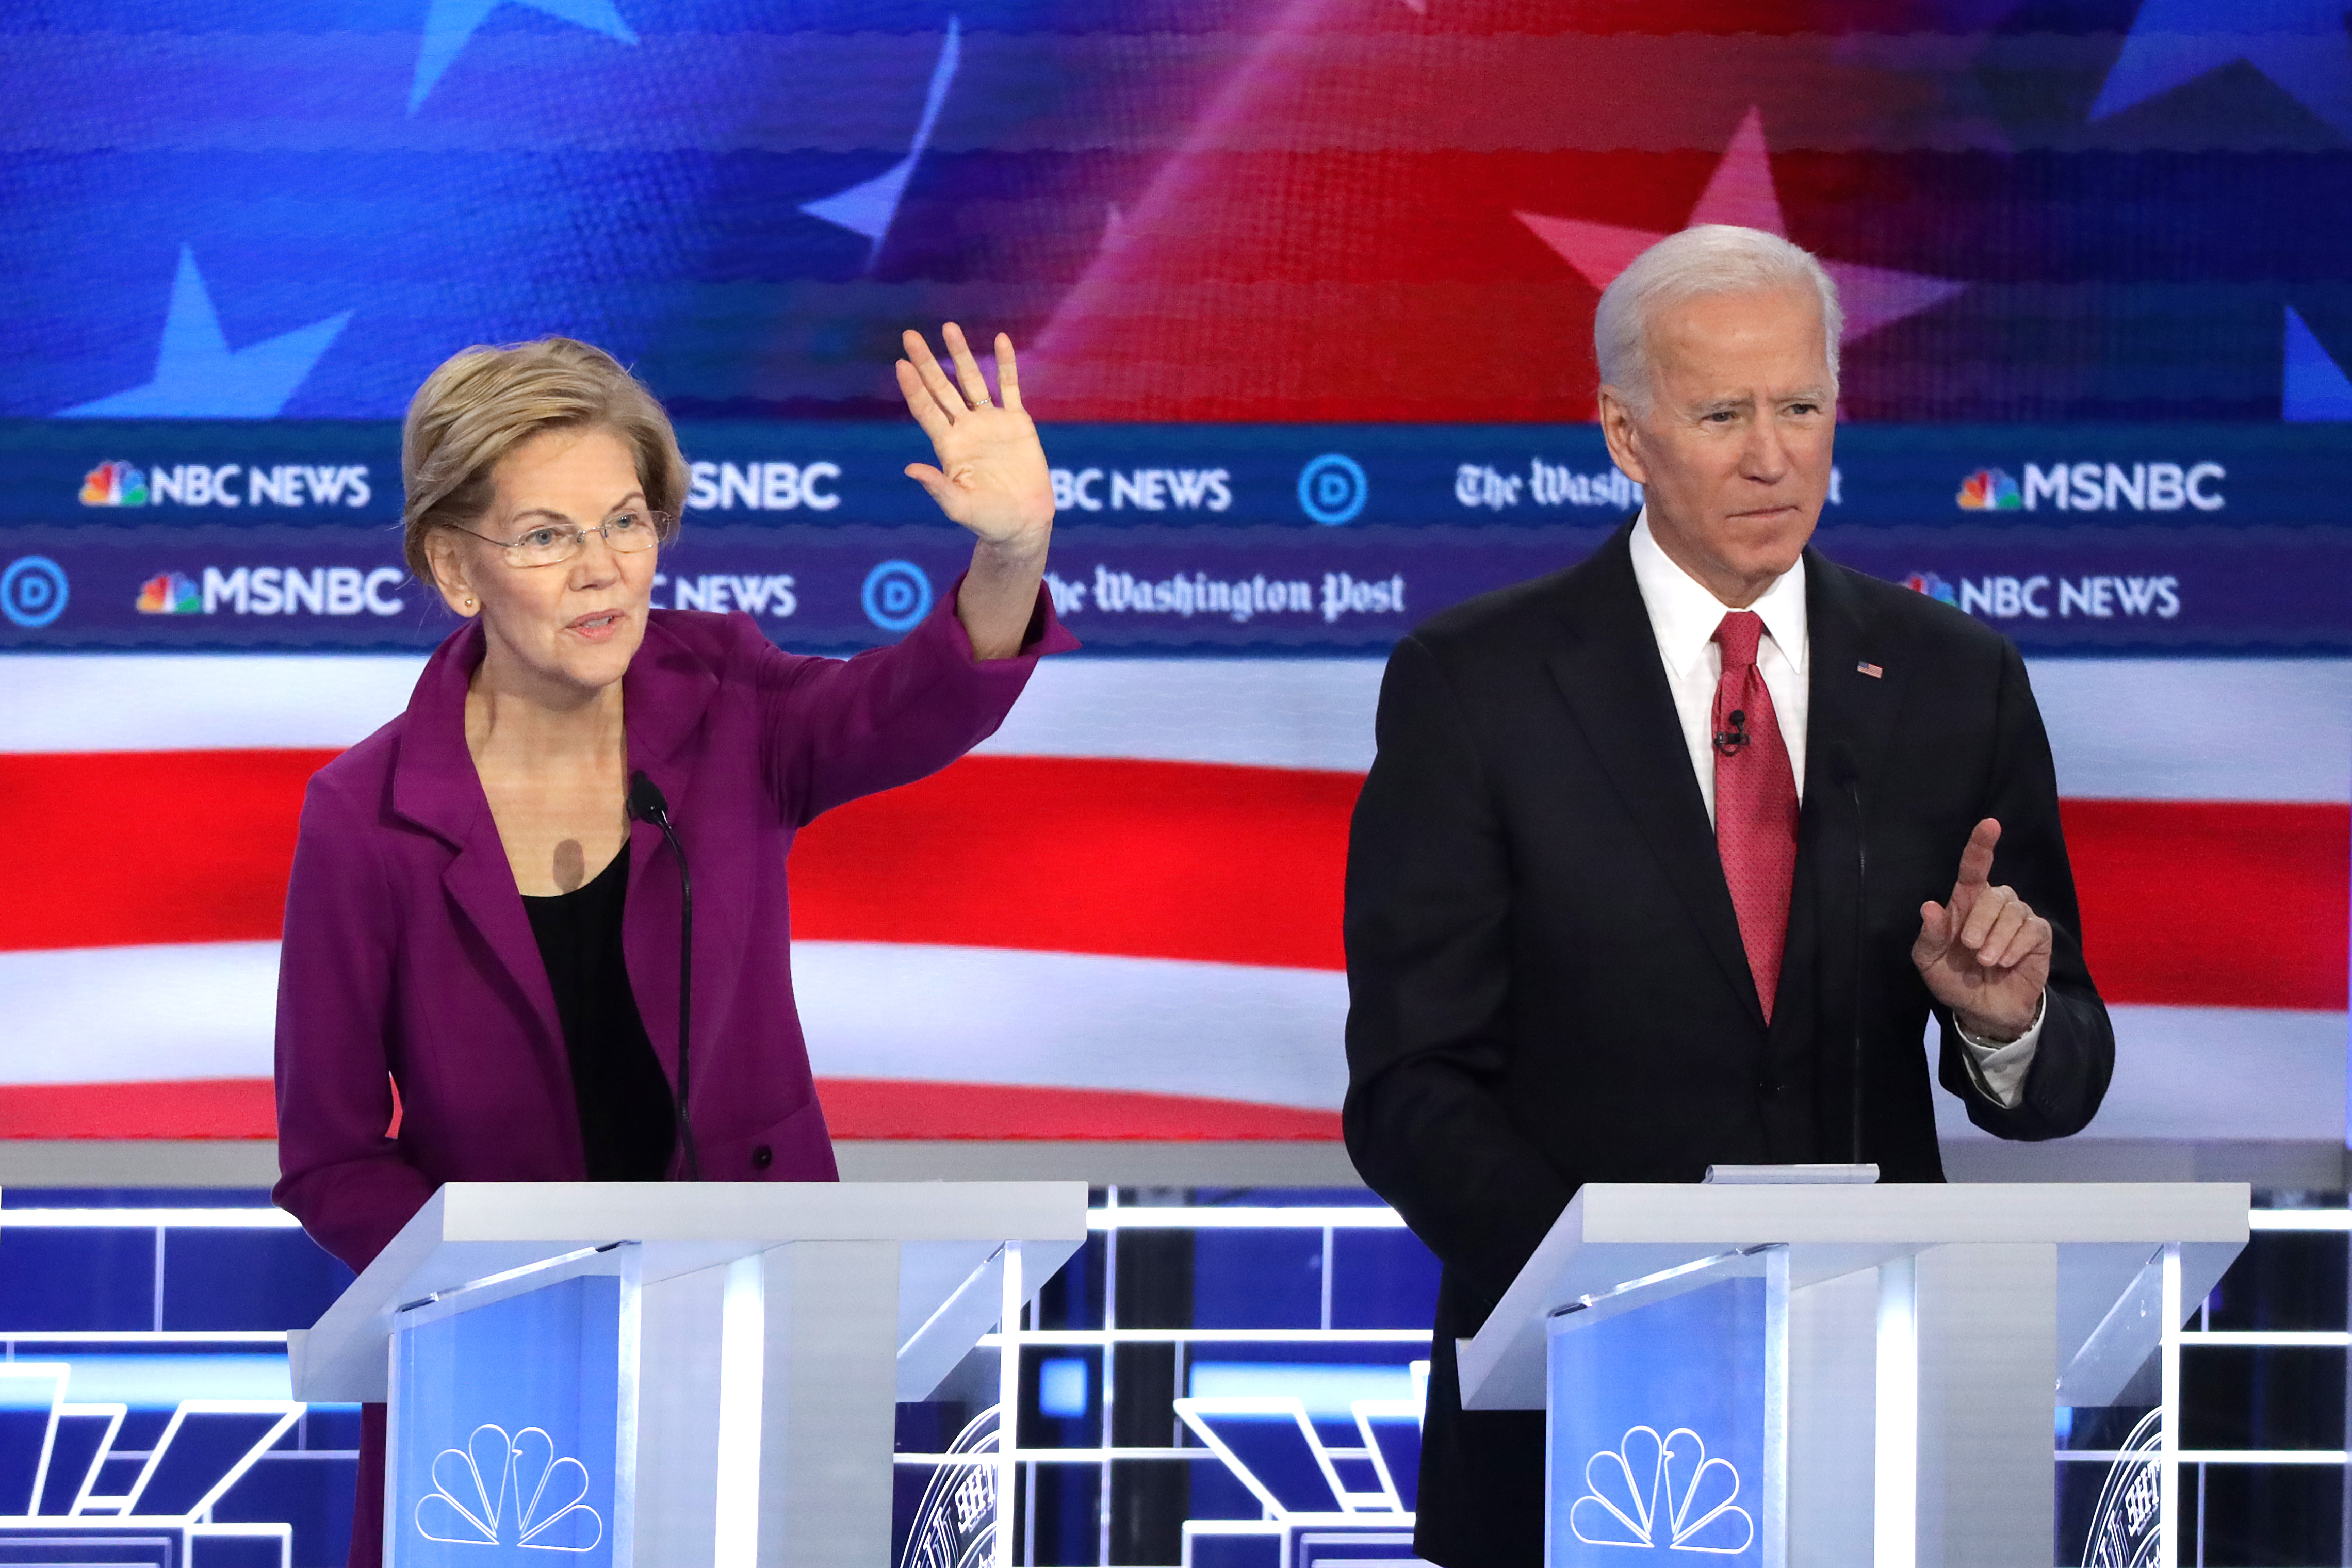 Elizabeth Warren (D-MA) (L) and former Vice President Joe Biden raise their hands during the Democratic Presidential Debate at Tyler Perry Studios November 20, 2019 in Atlanta, Georgia. (Alex Wong/Getty Images)